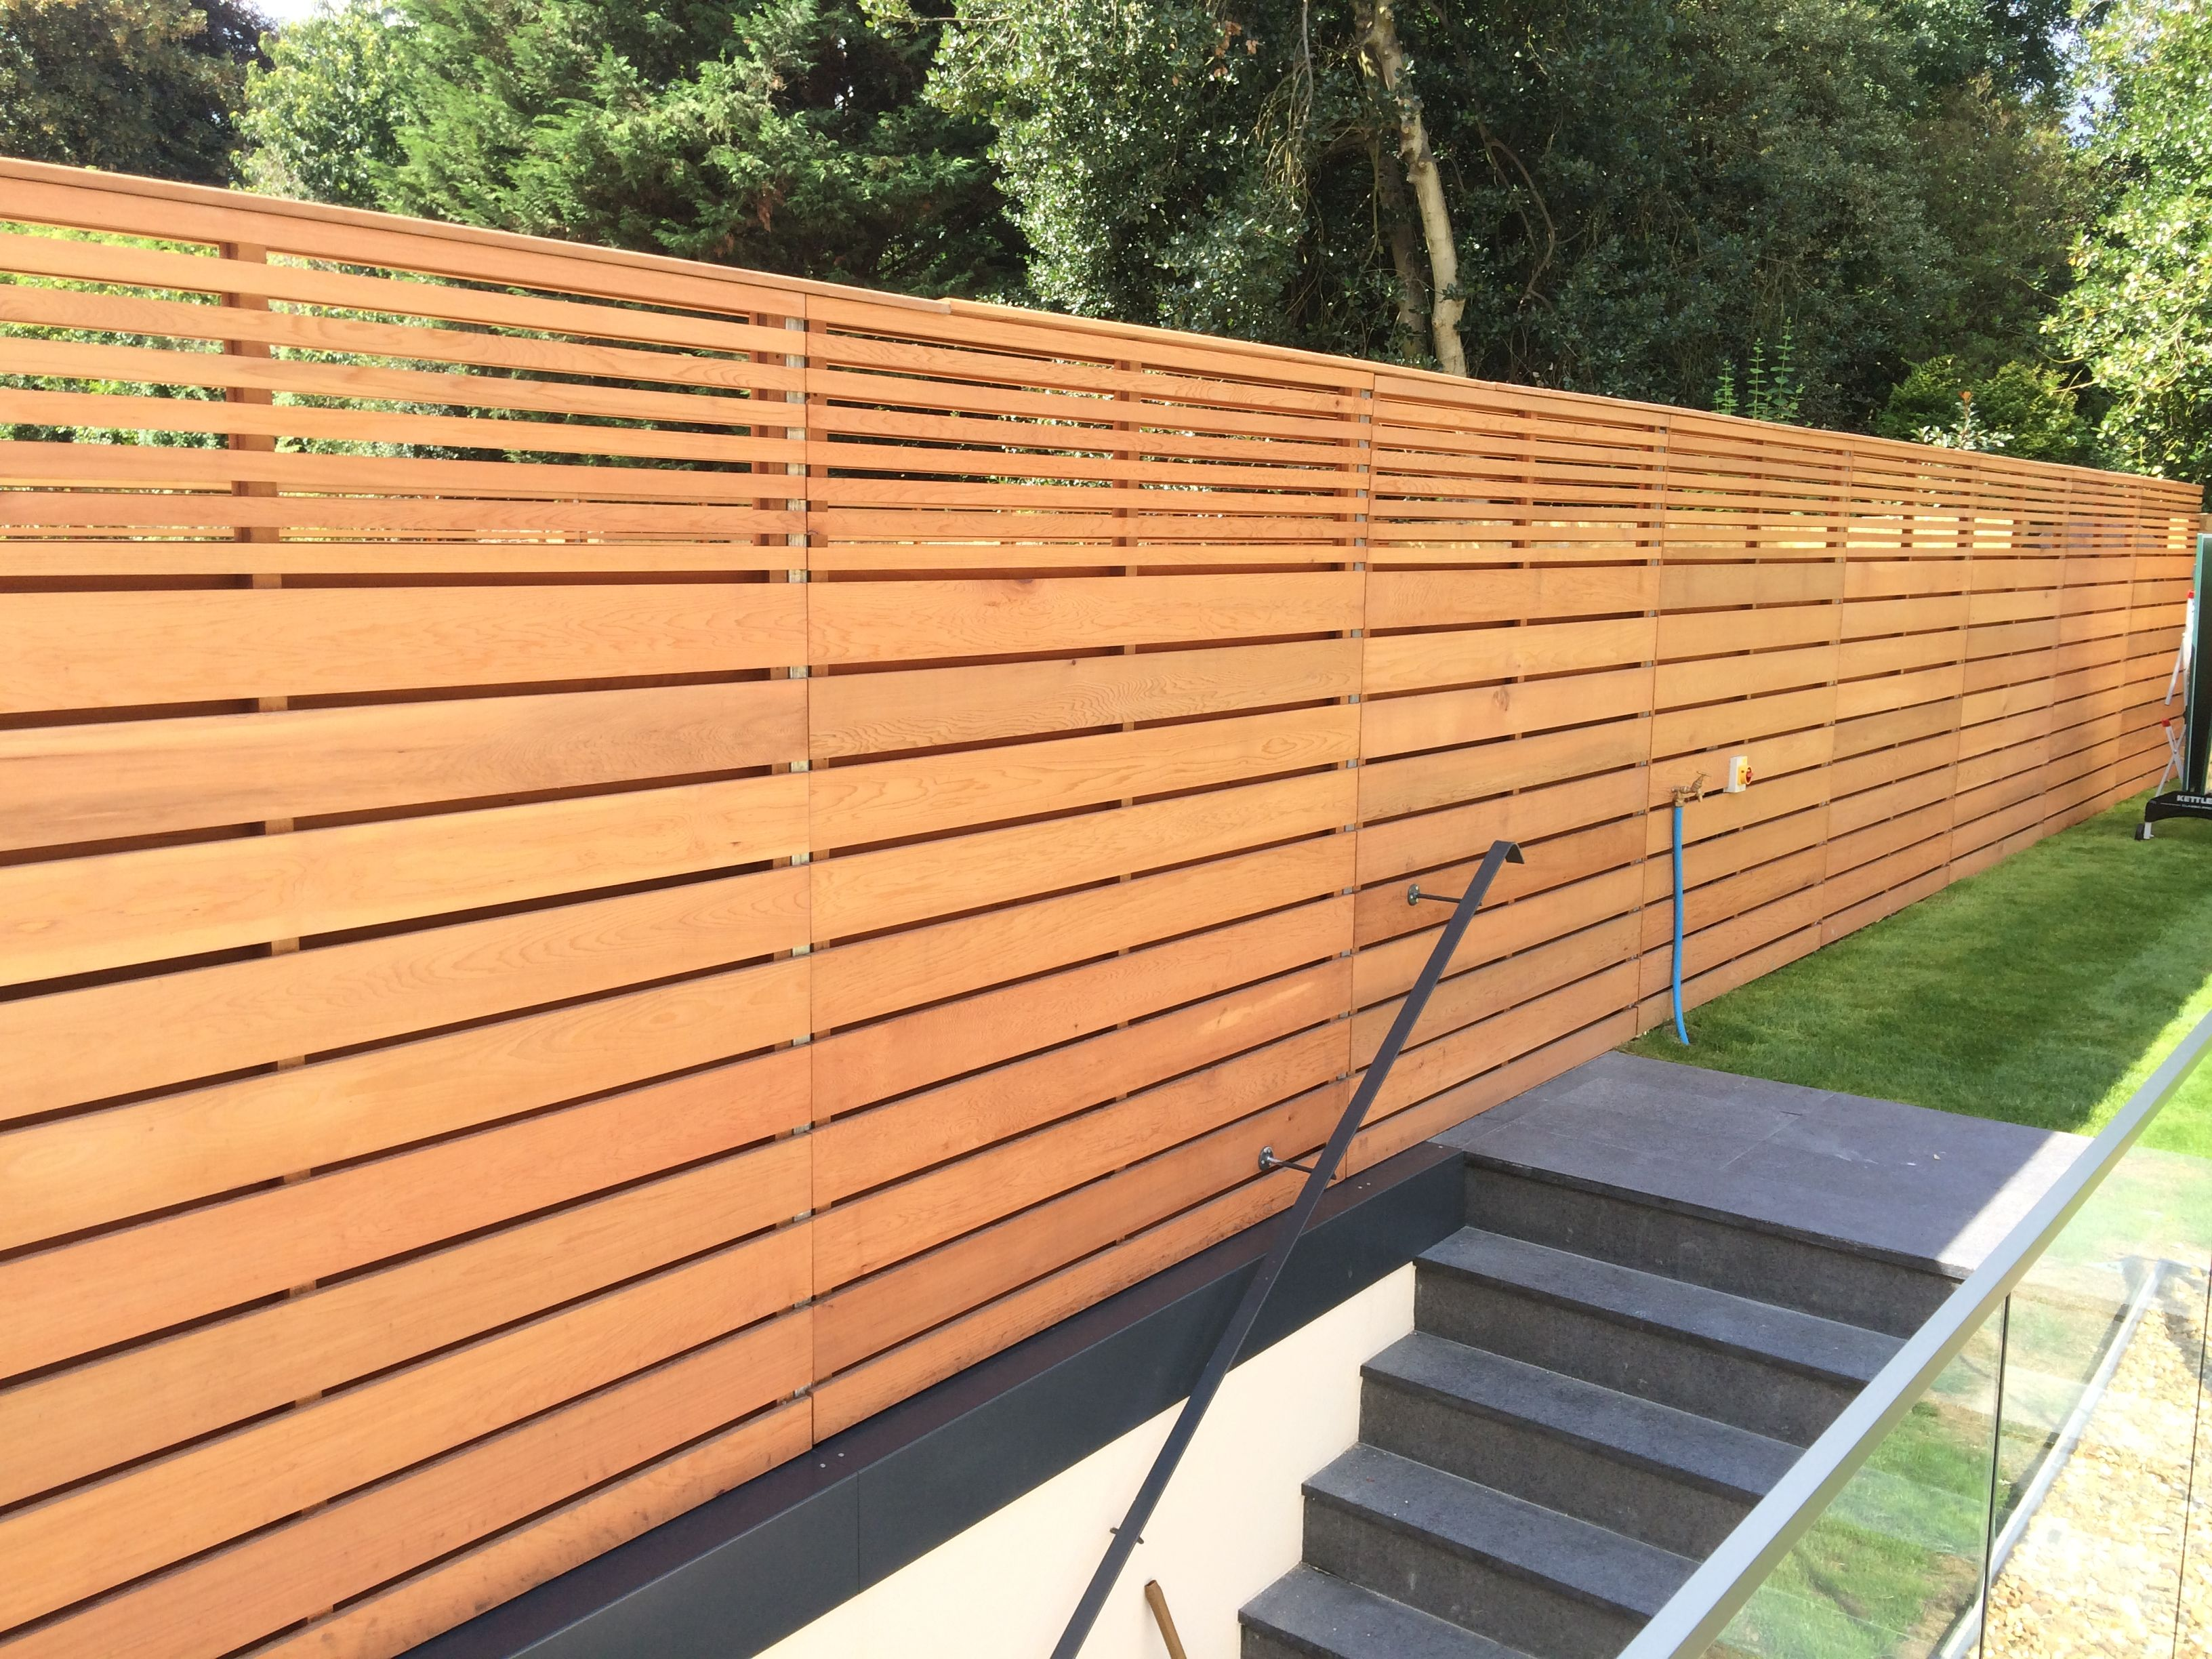 Cedar slatted fencing with a combination of large and